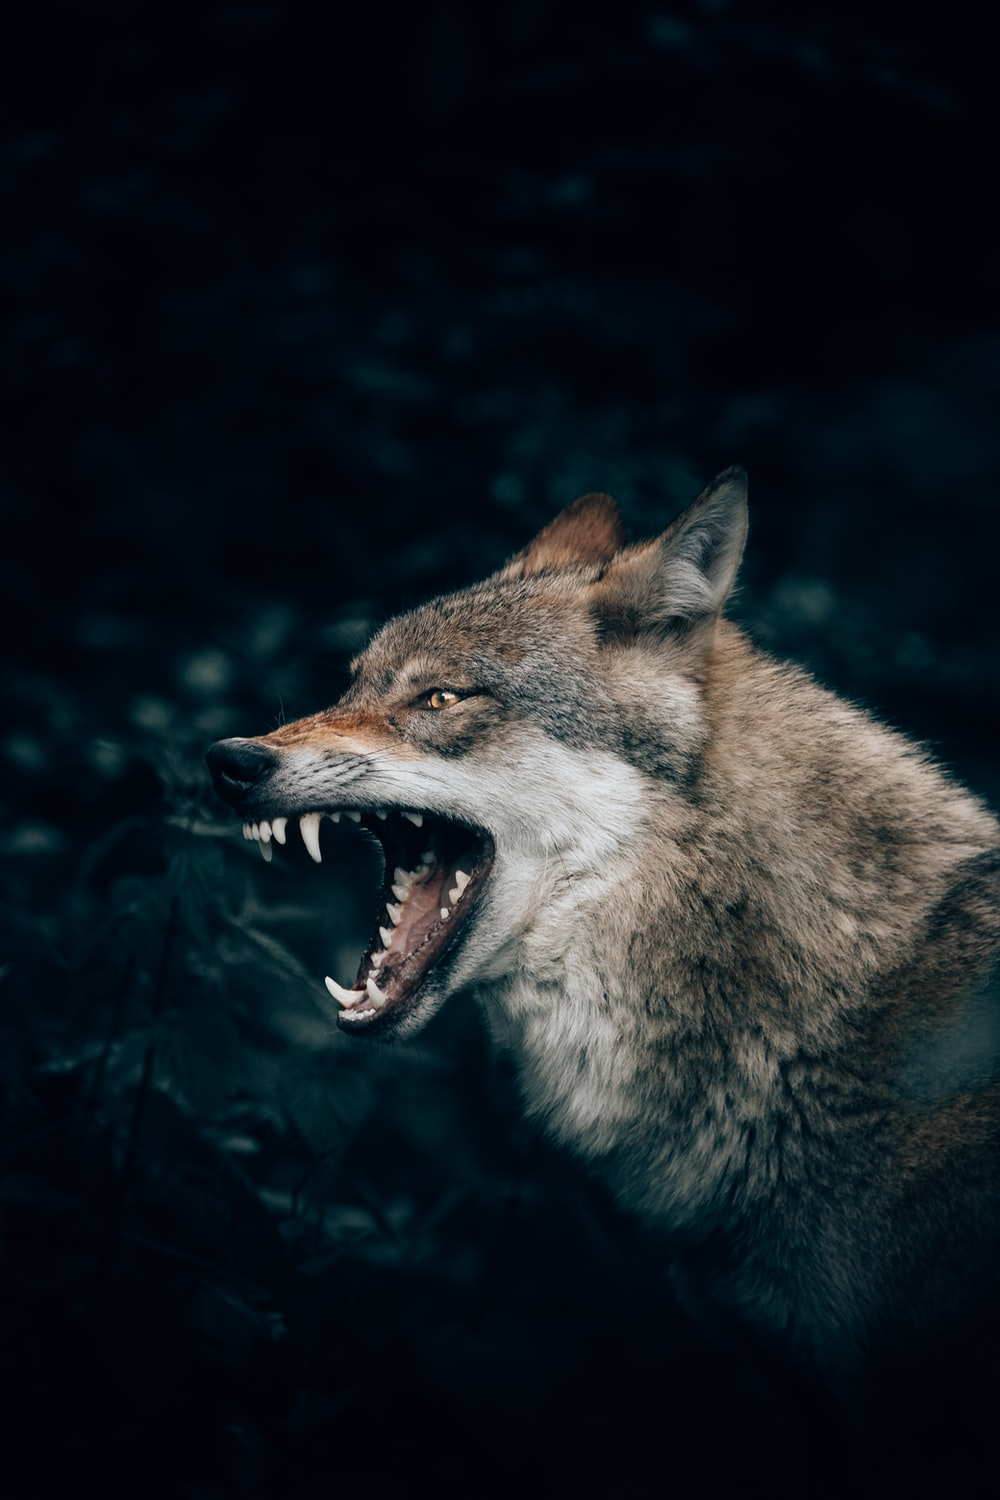 Wolf Wallpapers HD Download [500 HQ] Unsplash 1000x1500